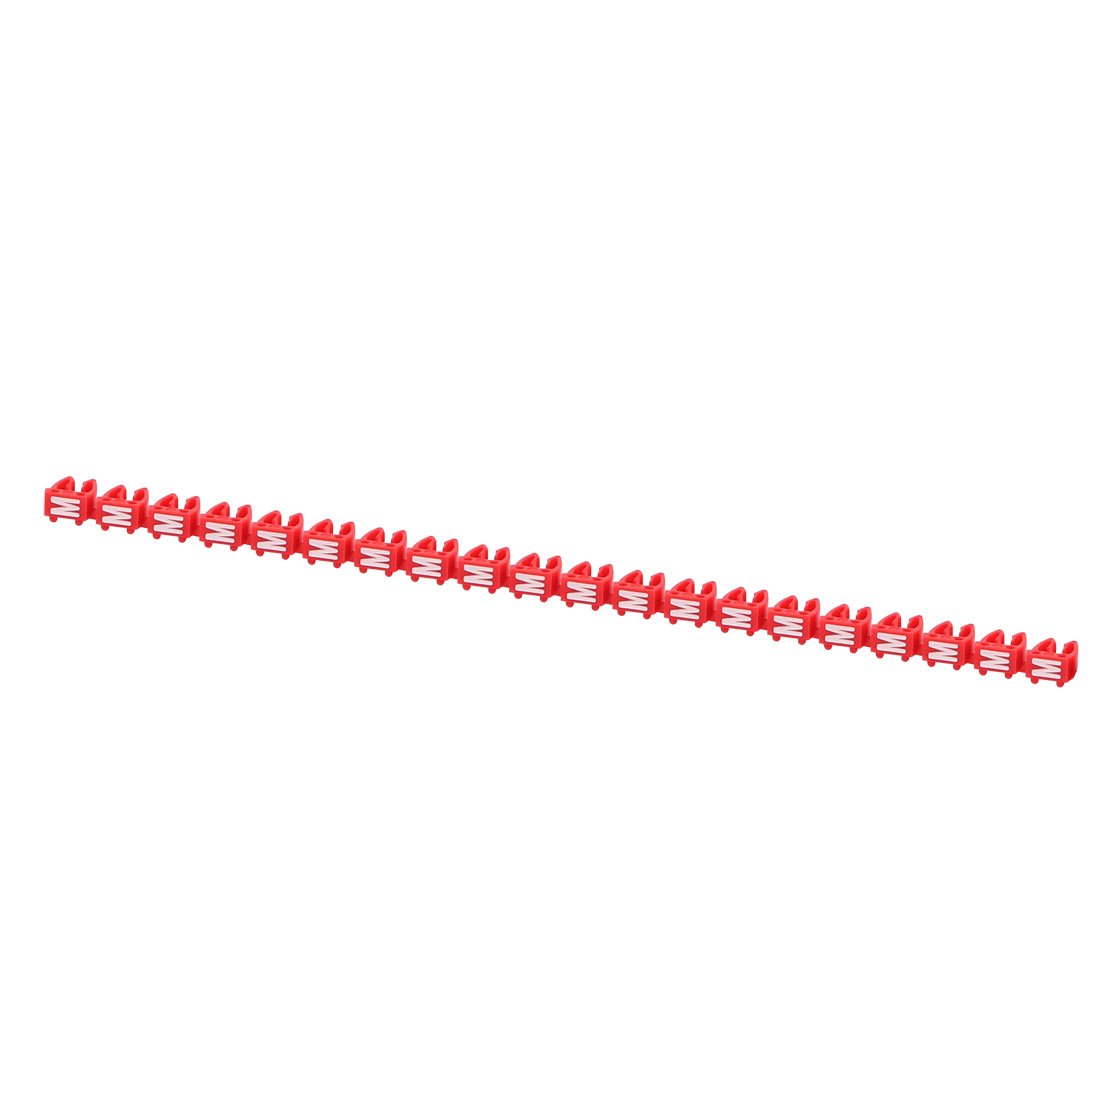 20Pcs Letters M Network Cable Labels Markers Red for 4.0-6.0mm Dia Cable